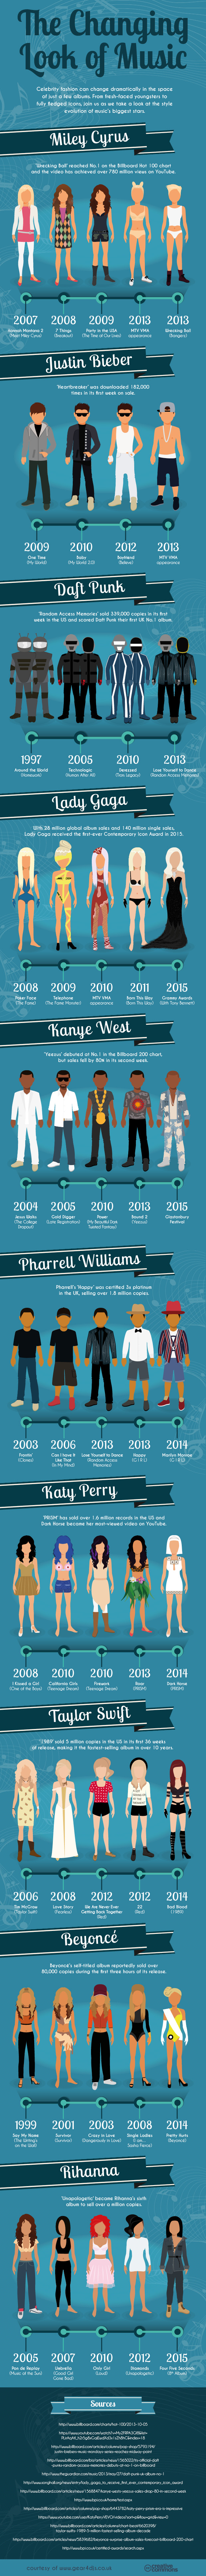 infographic - music artists and their evolving fashion